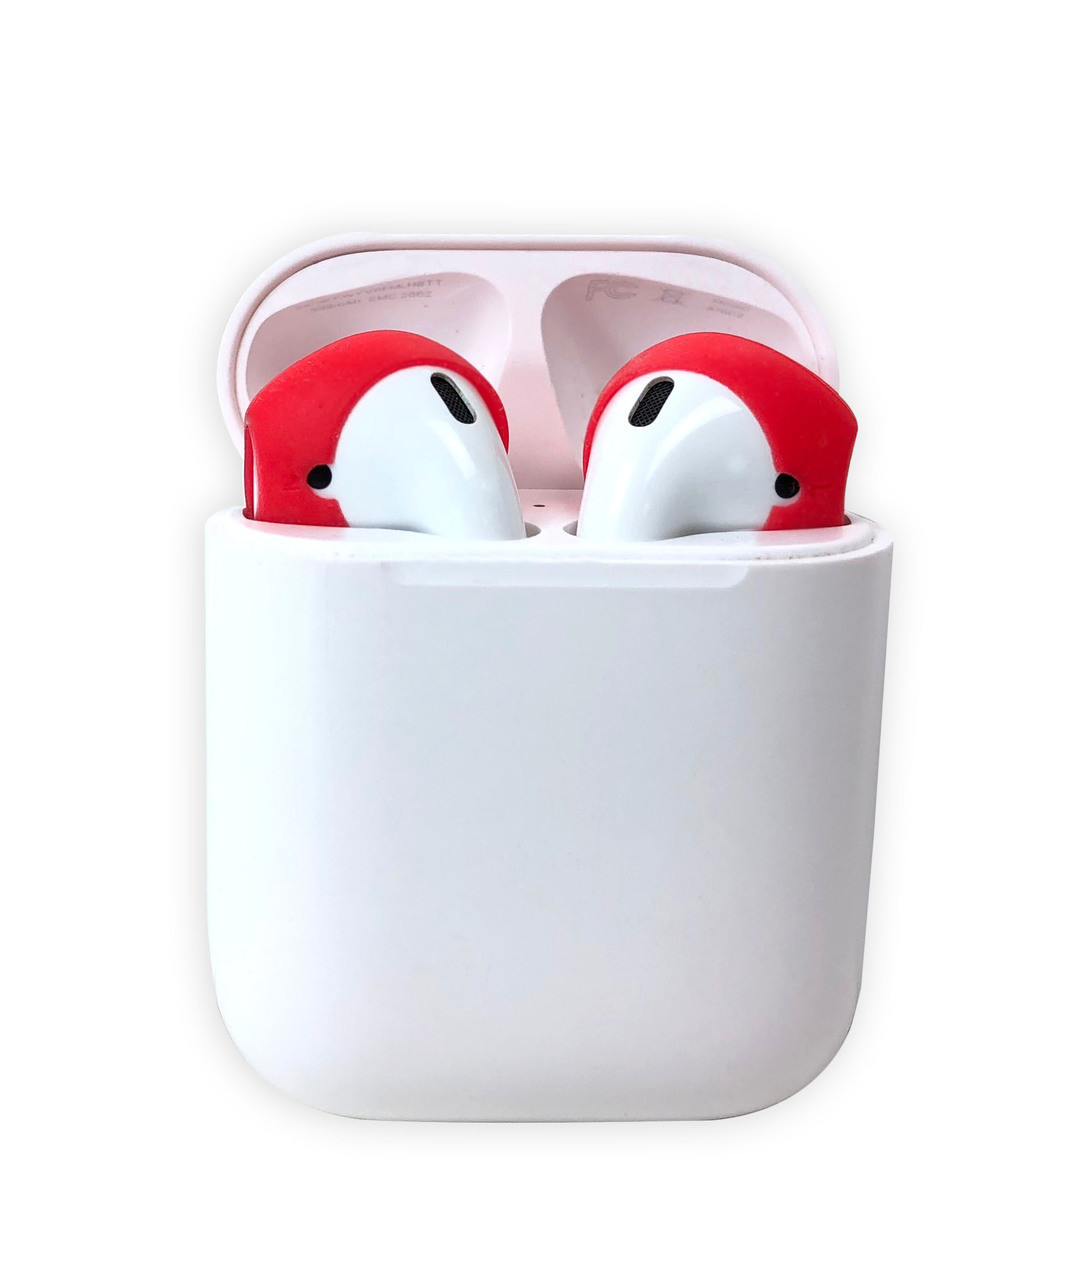 AERZ - AirPods & Apple Earbuds Skins Covers  * AERZ dramatically improves the audio quality of Apple AirPods and Apple Earbuds 2.0 by air sealing AirPods and Earbuds to prevent the escape of sound waves; thereby dramatically improving audio quality